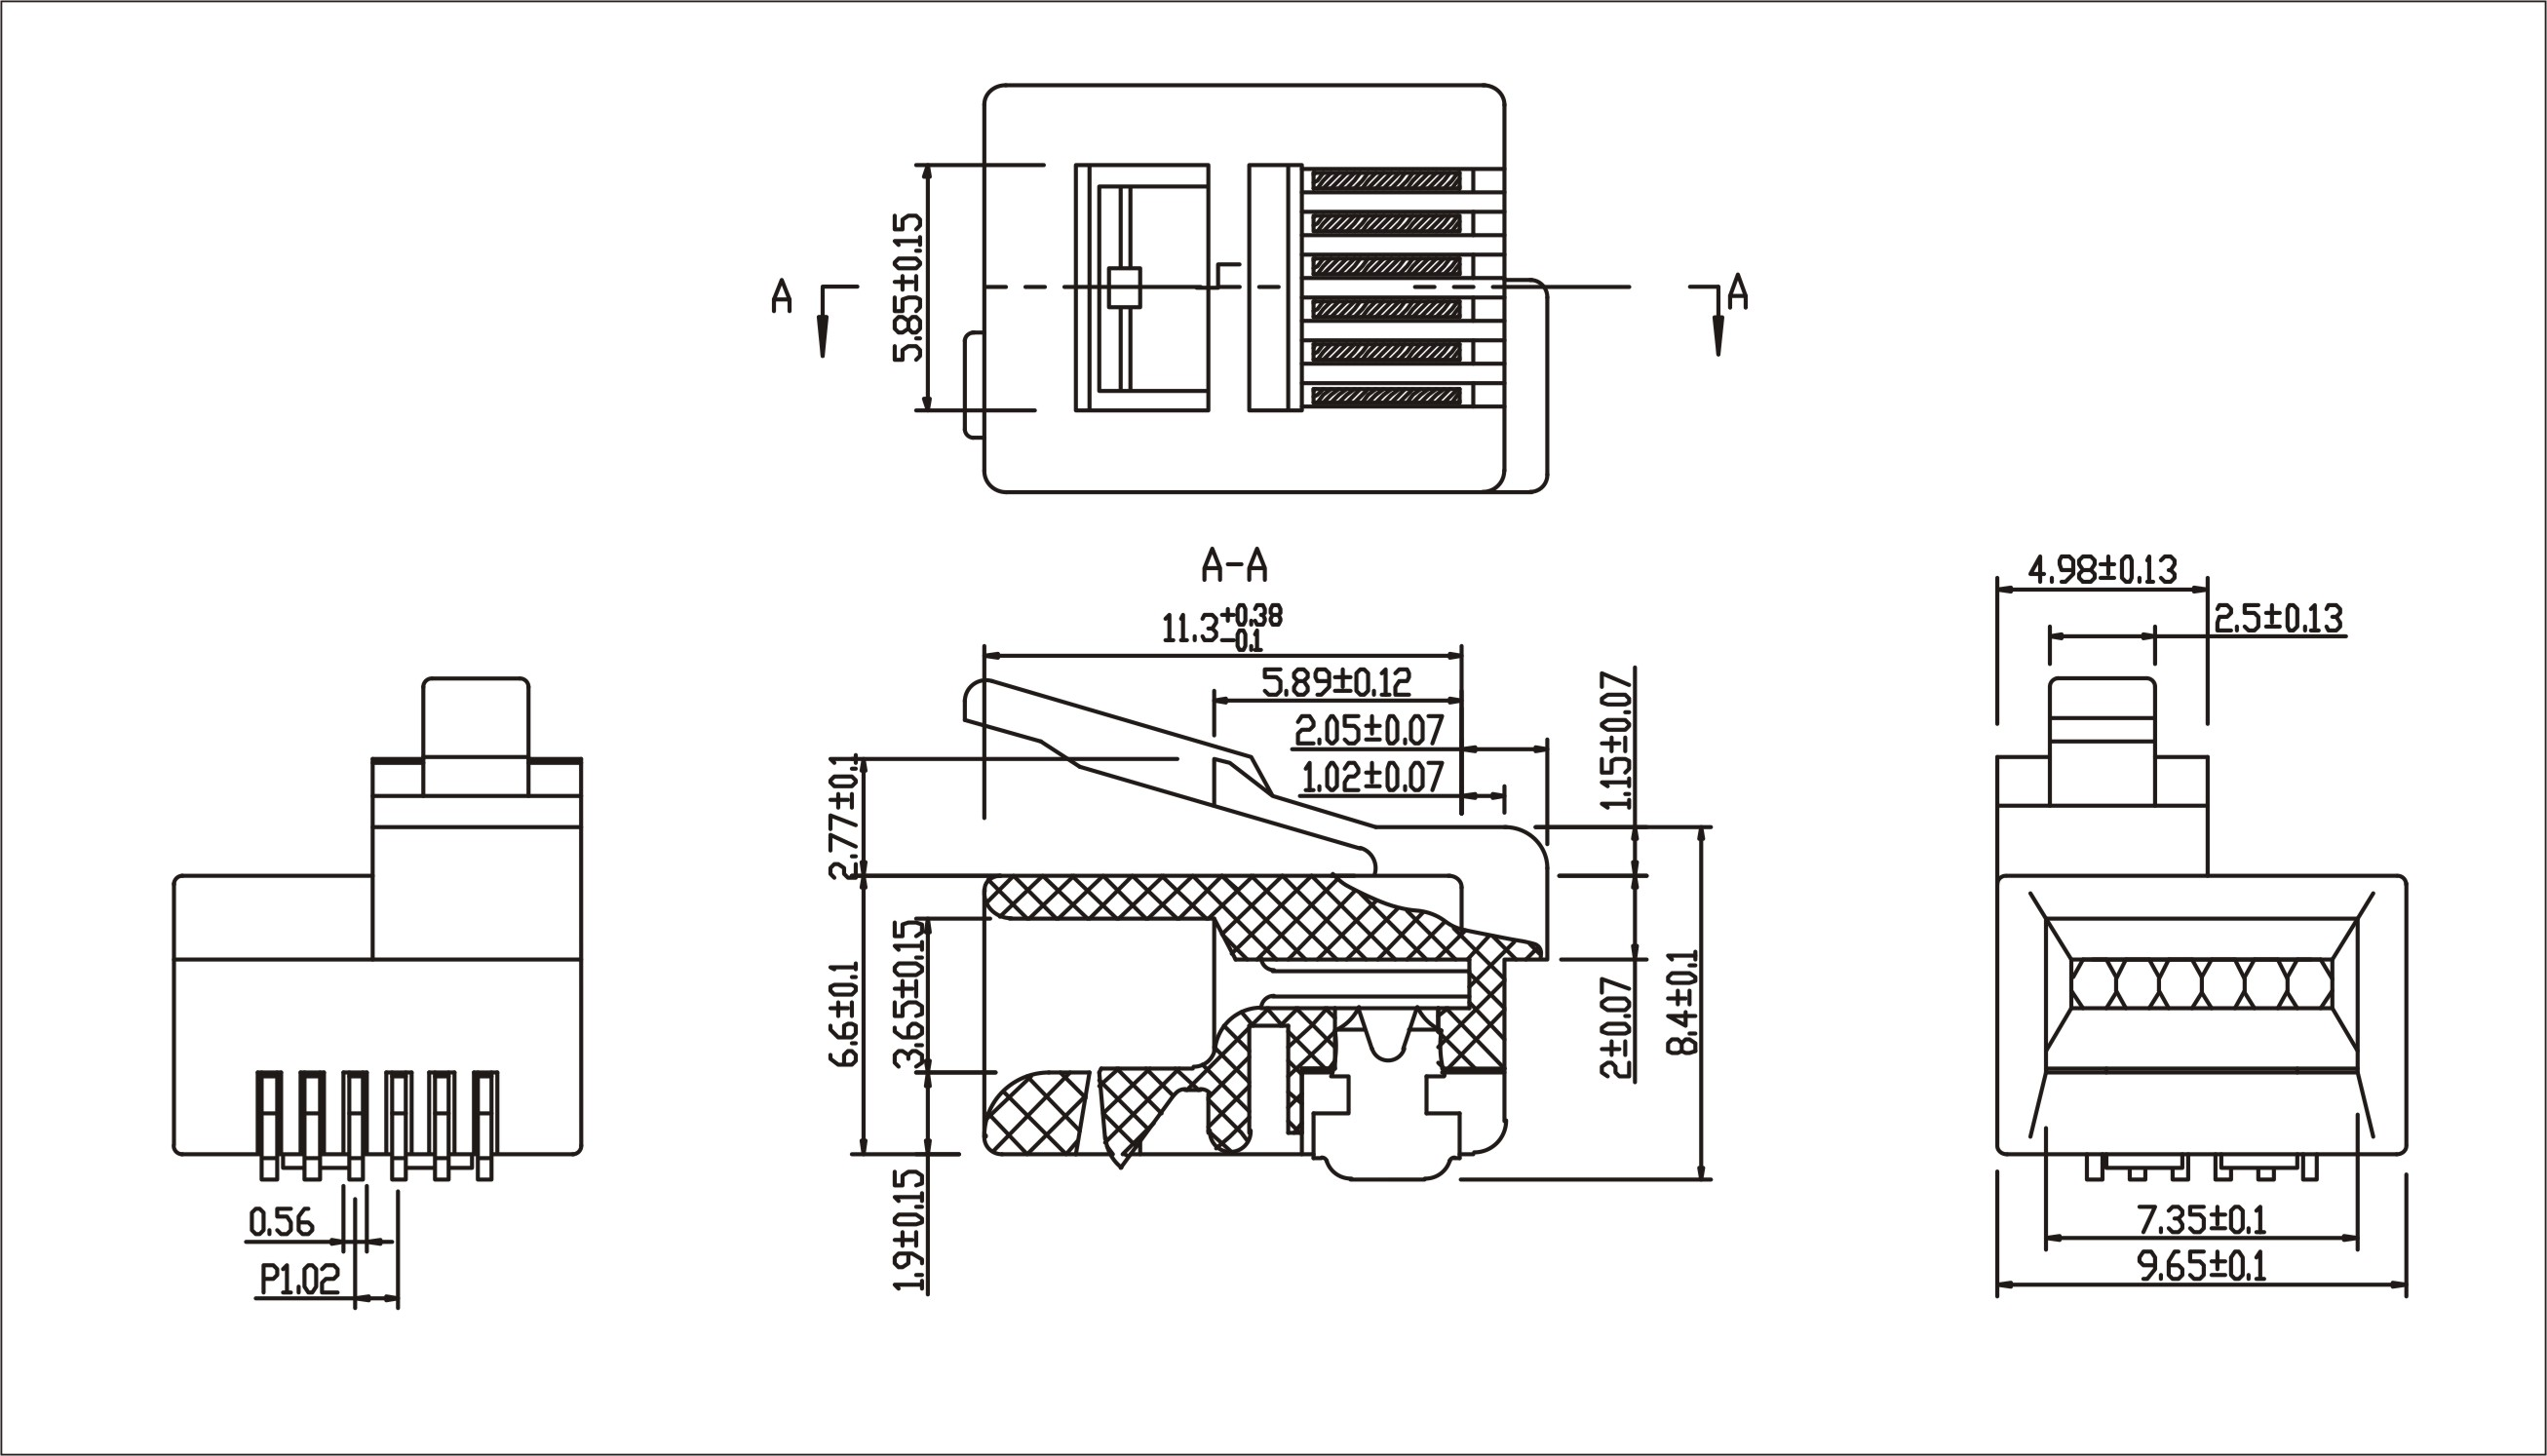 Male Rj11 Jack Wiring Diagram